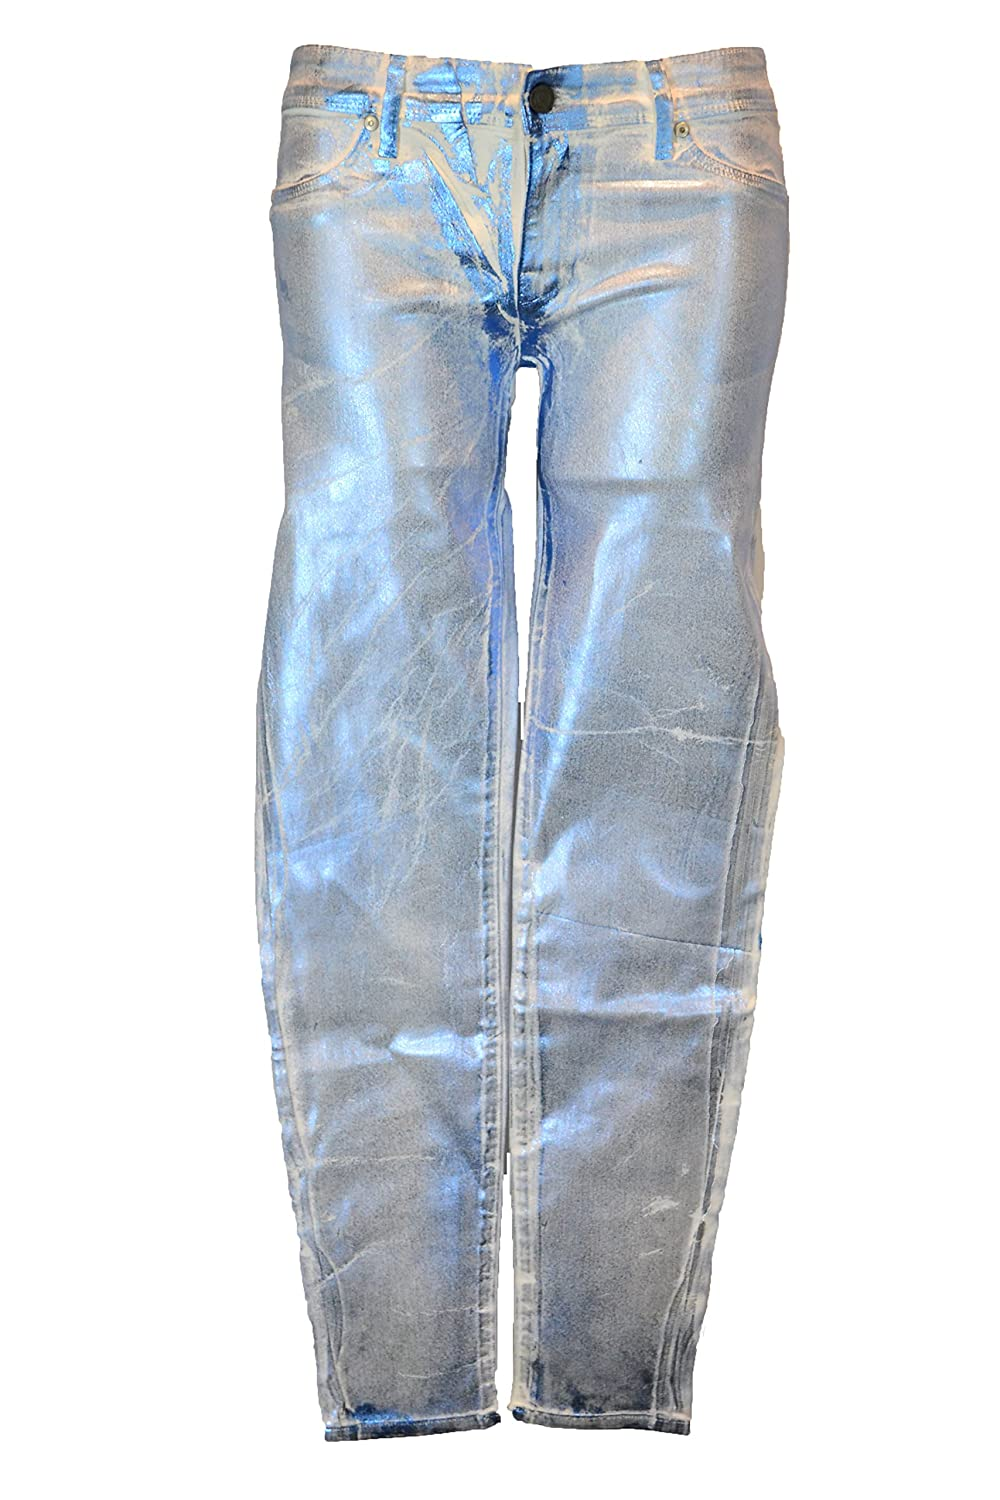 Sinclair Elon The Stick Skinny Jeans in Metallic Light Blue